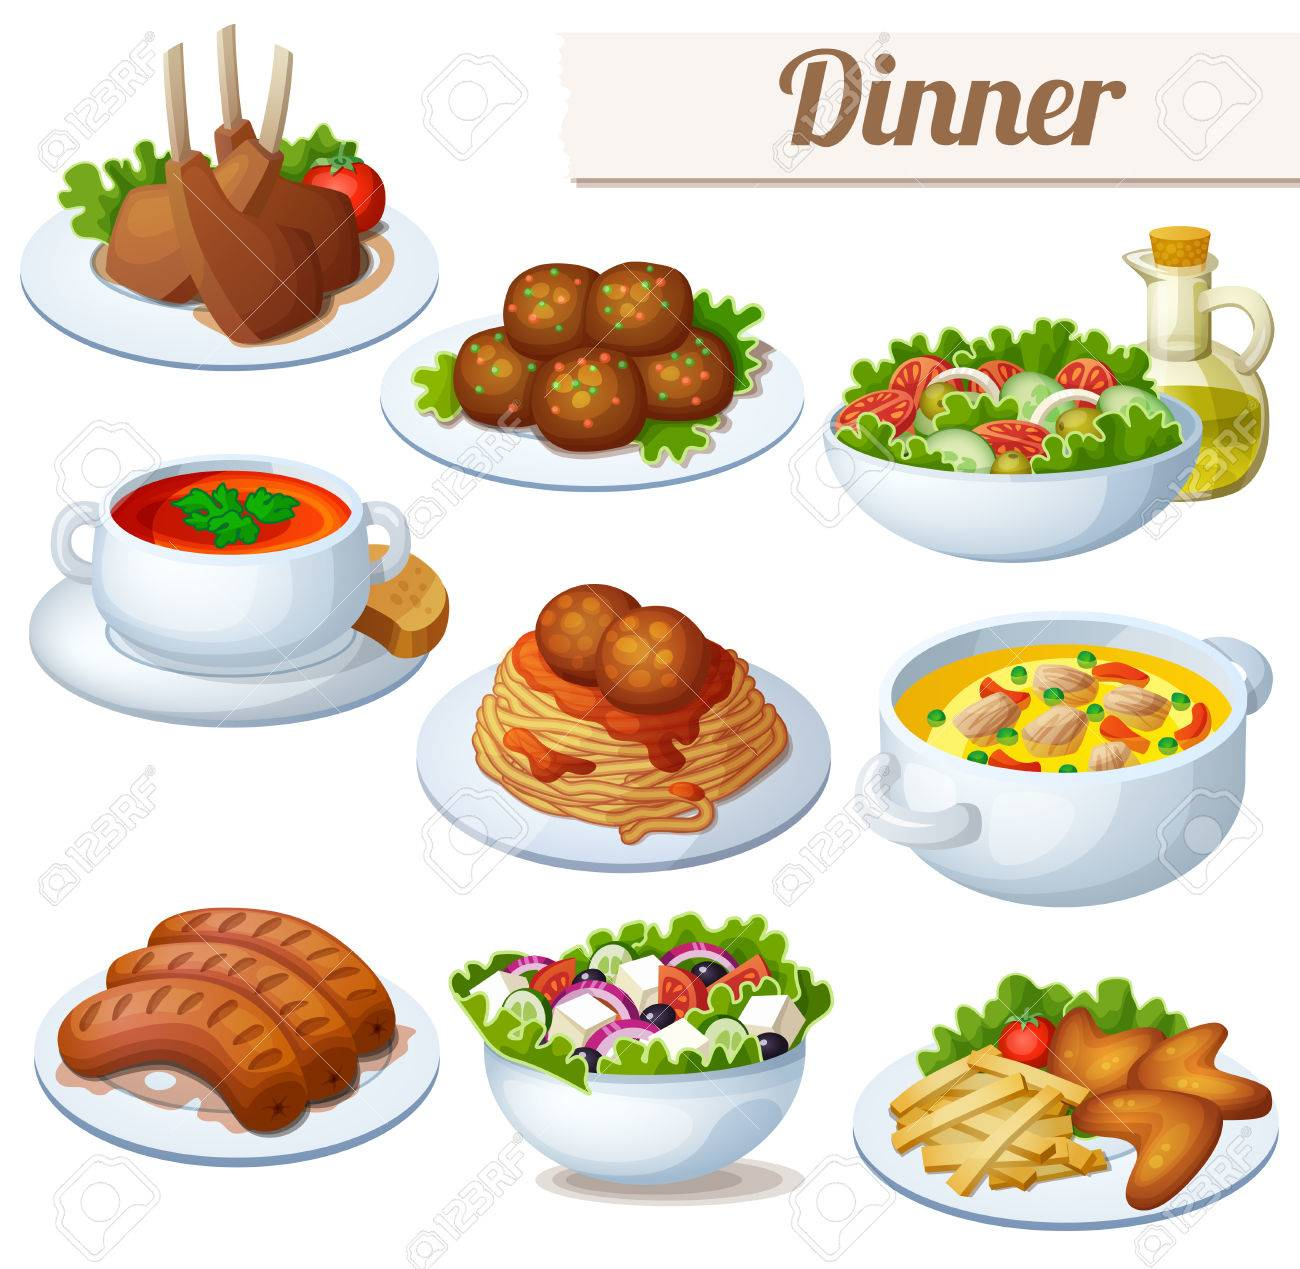 Set of food icons isolated on white background. Dinner. Lamb chops, spaghetti with meat balls, salad with olive oil, cream soup, bollion, grilled sausages, greek salad, chicken wings - 53882506